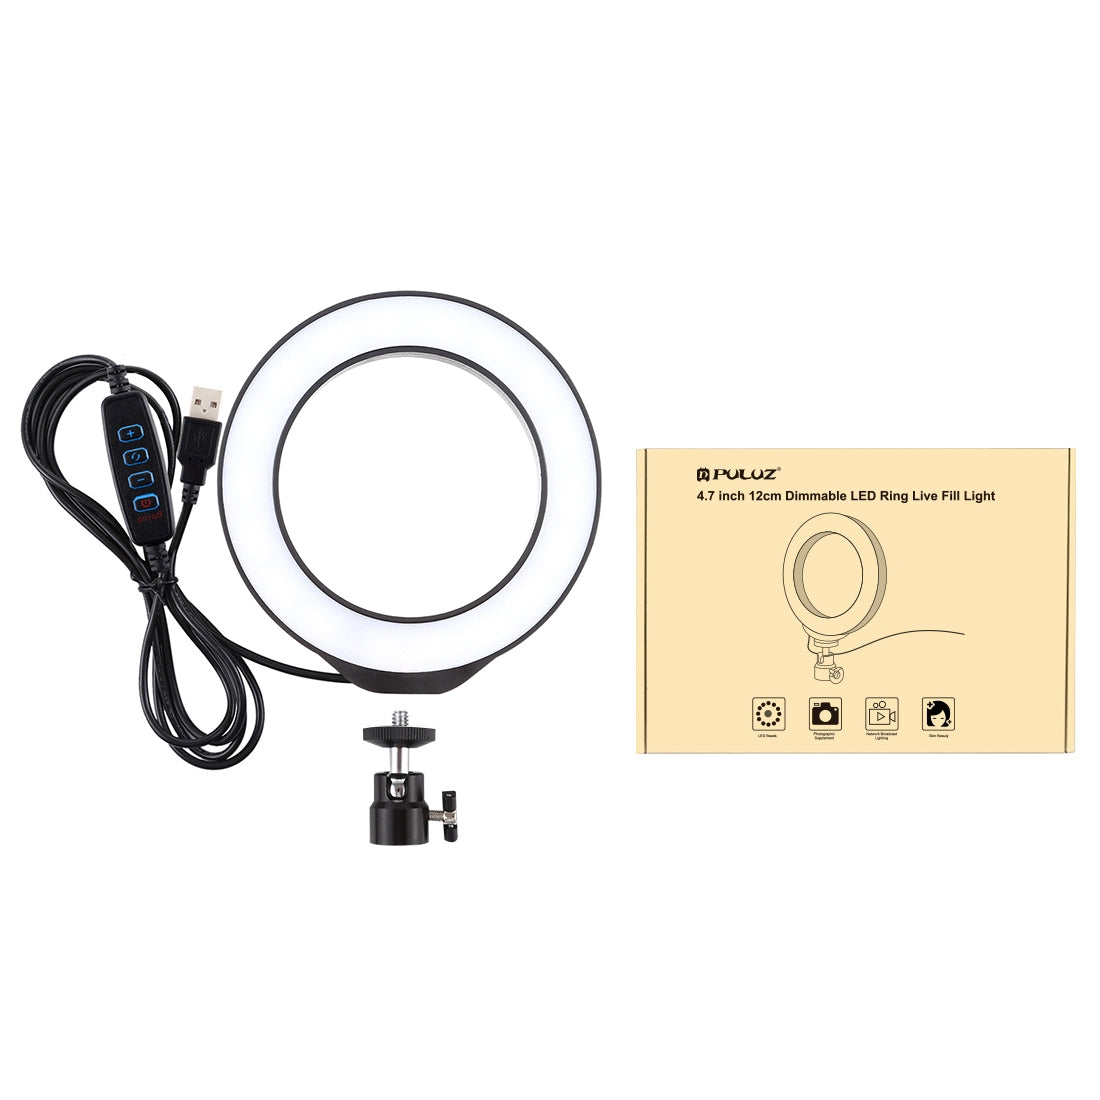 4.7 inch 12cm USB 3 Modes Dimmable LED Ring Vlogging Photography Video Lights  with Cold Shoe Tripod Ball Head(Black)